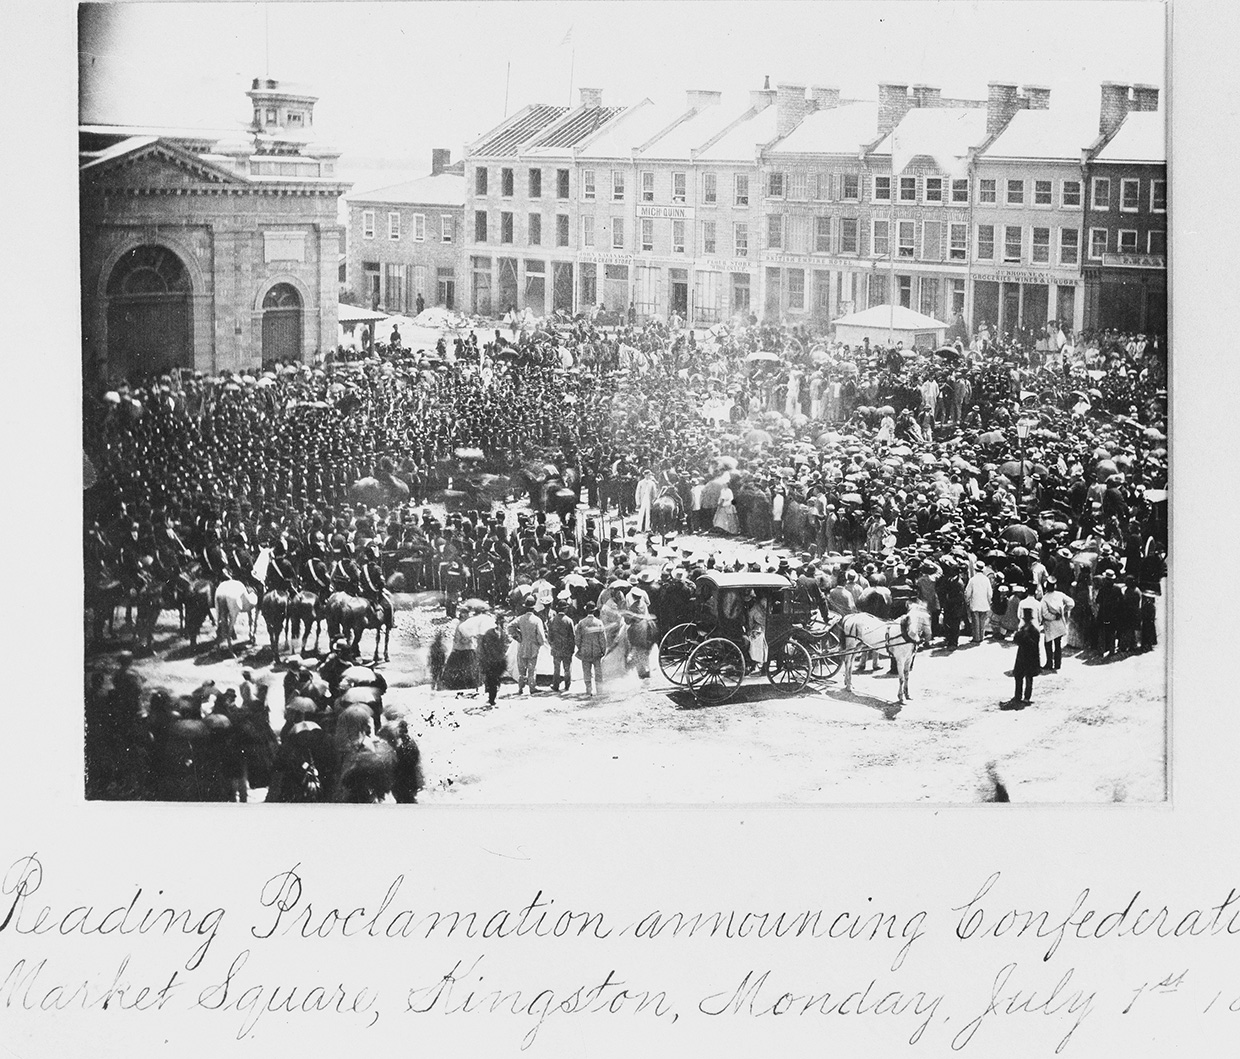 photograph of Confederation proclamation at Queens University in Kingston in 1867